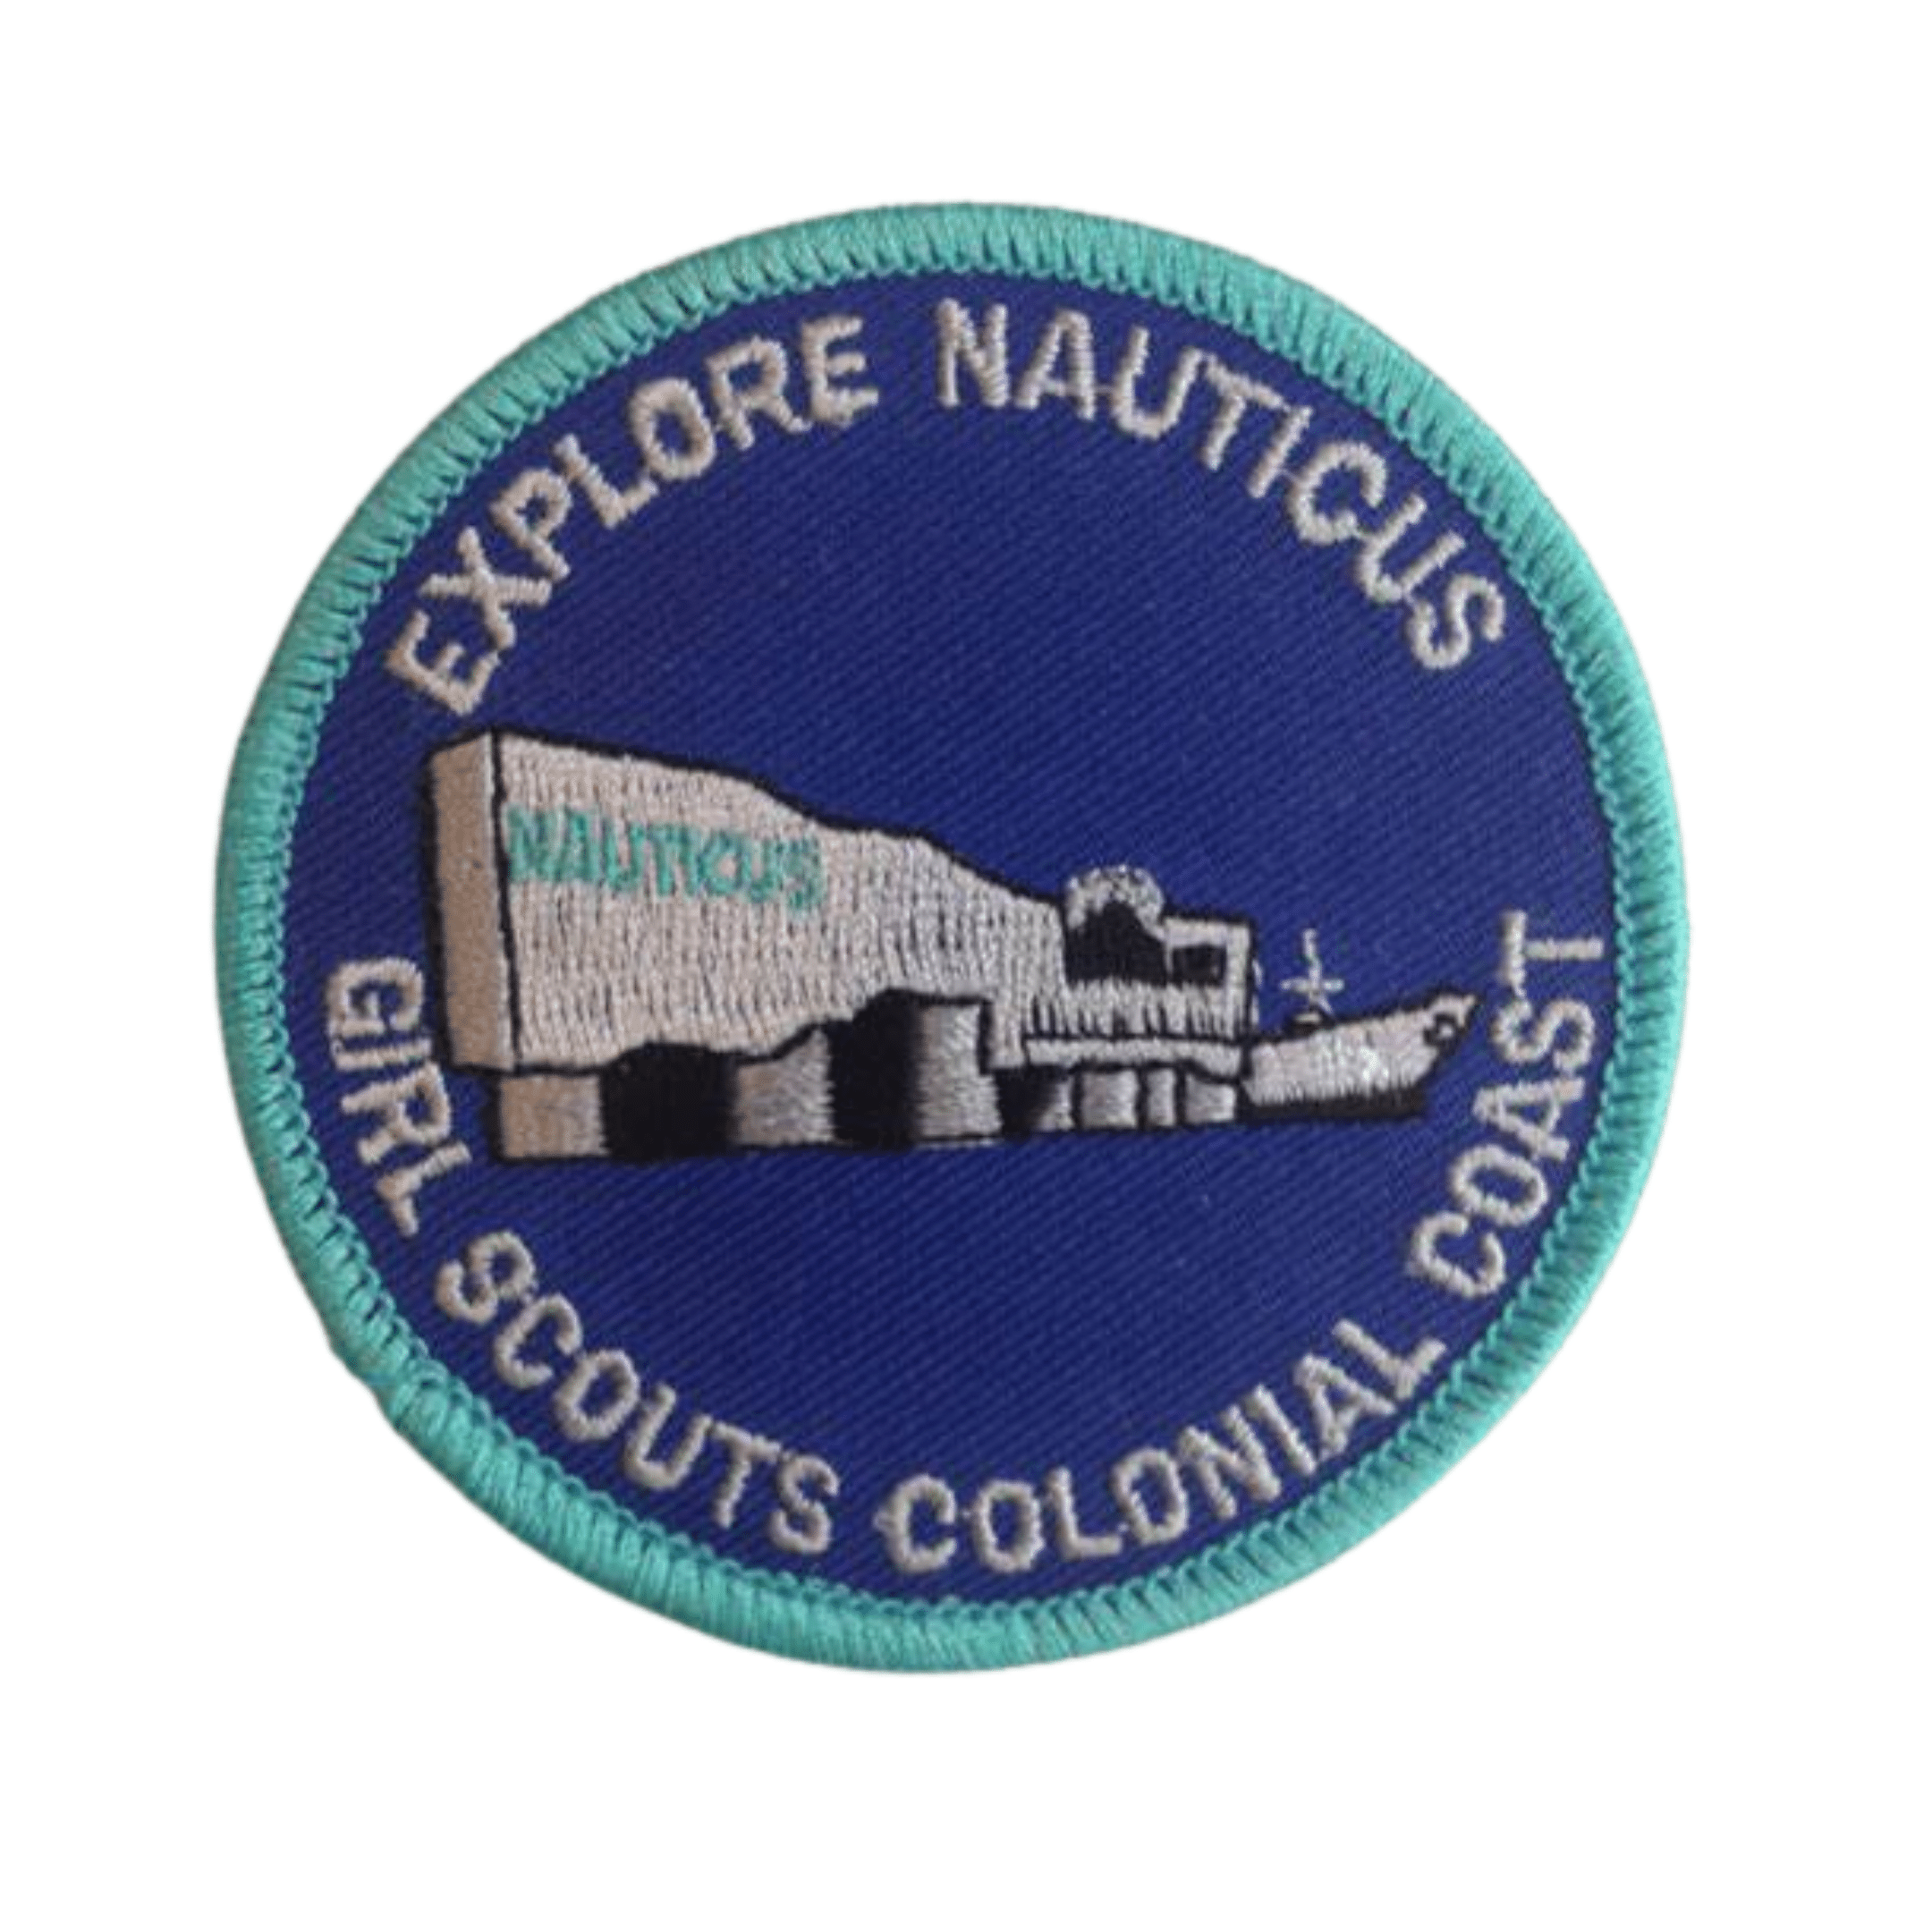 Explore Nauticus Girl Scouts Patch